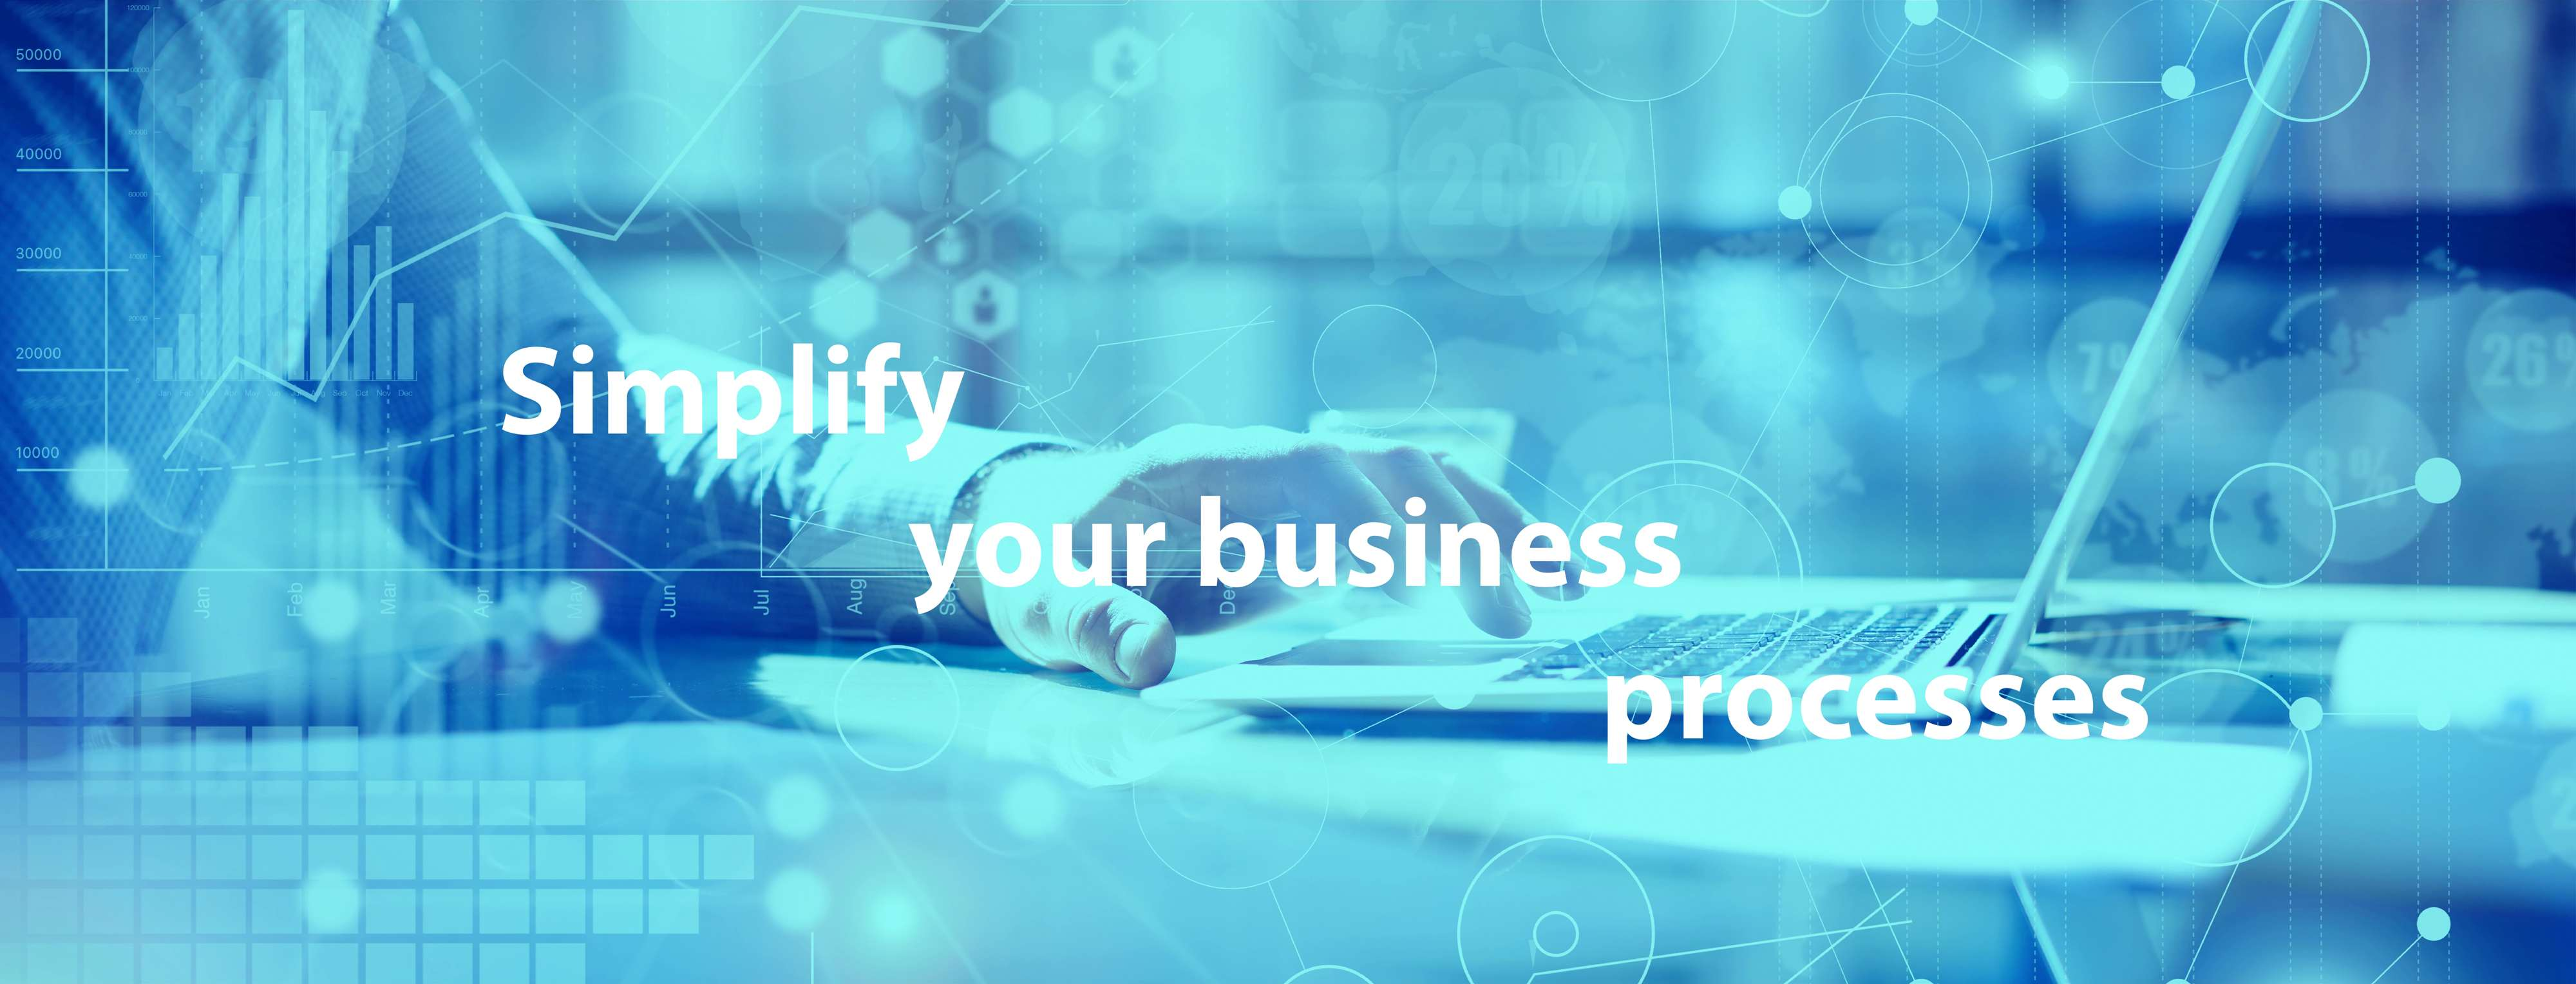 Simplify your business processes